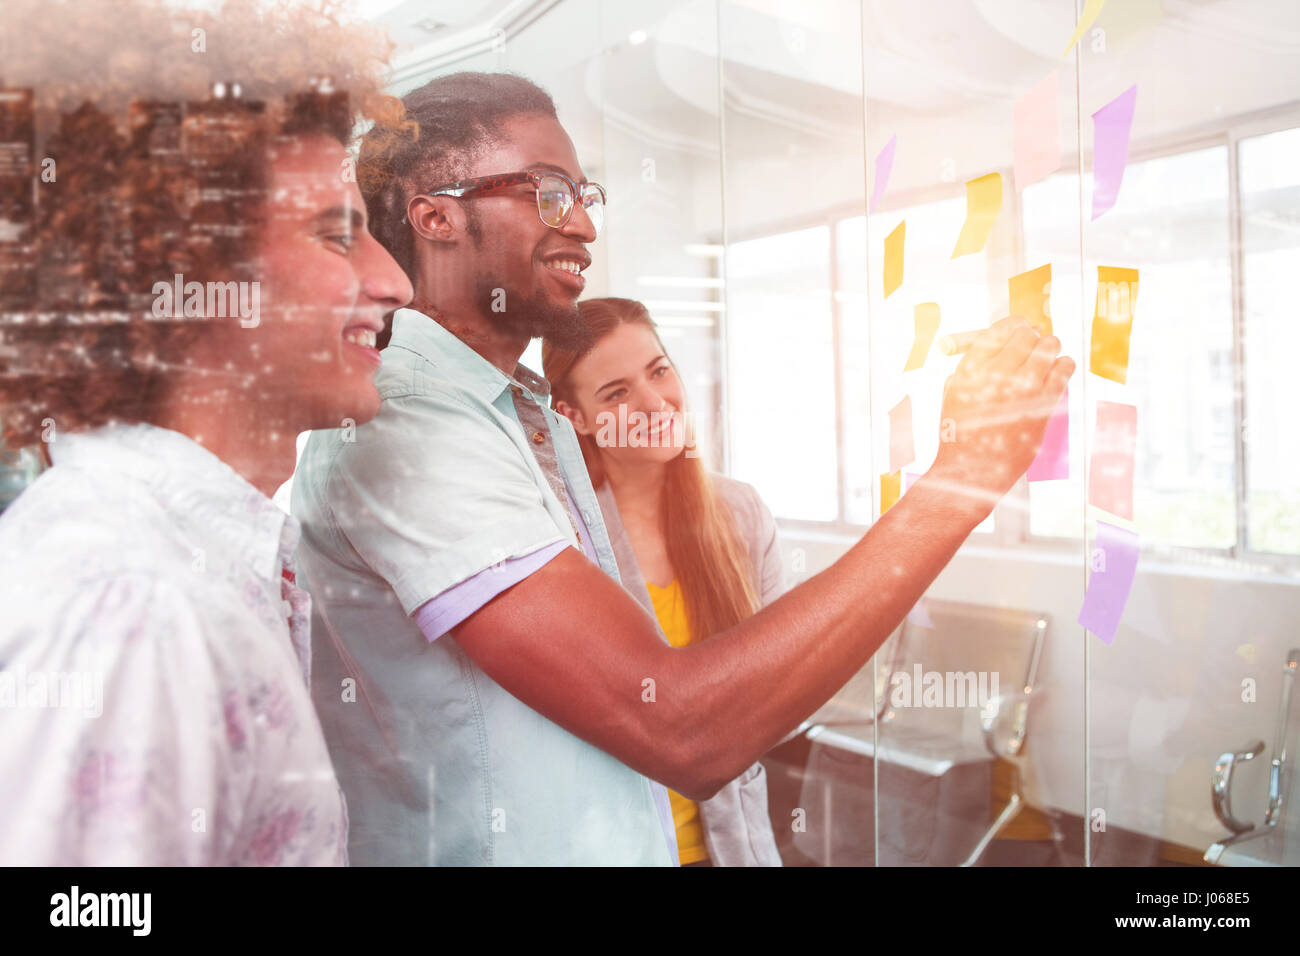 High angle view of illuminated cityscape against creative bussiness people discussing over adhesive notes - Stock Image